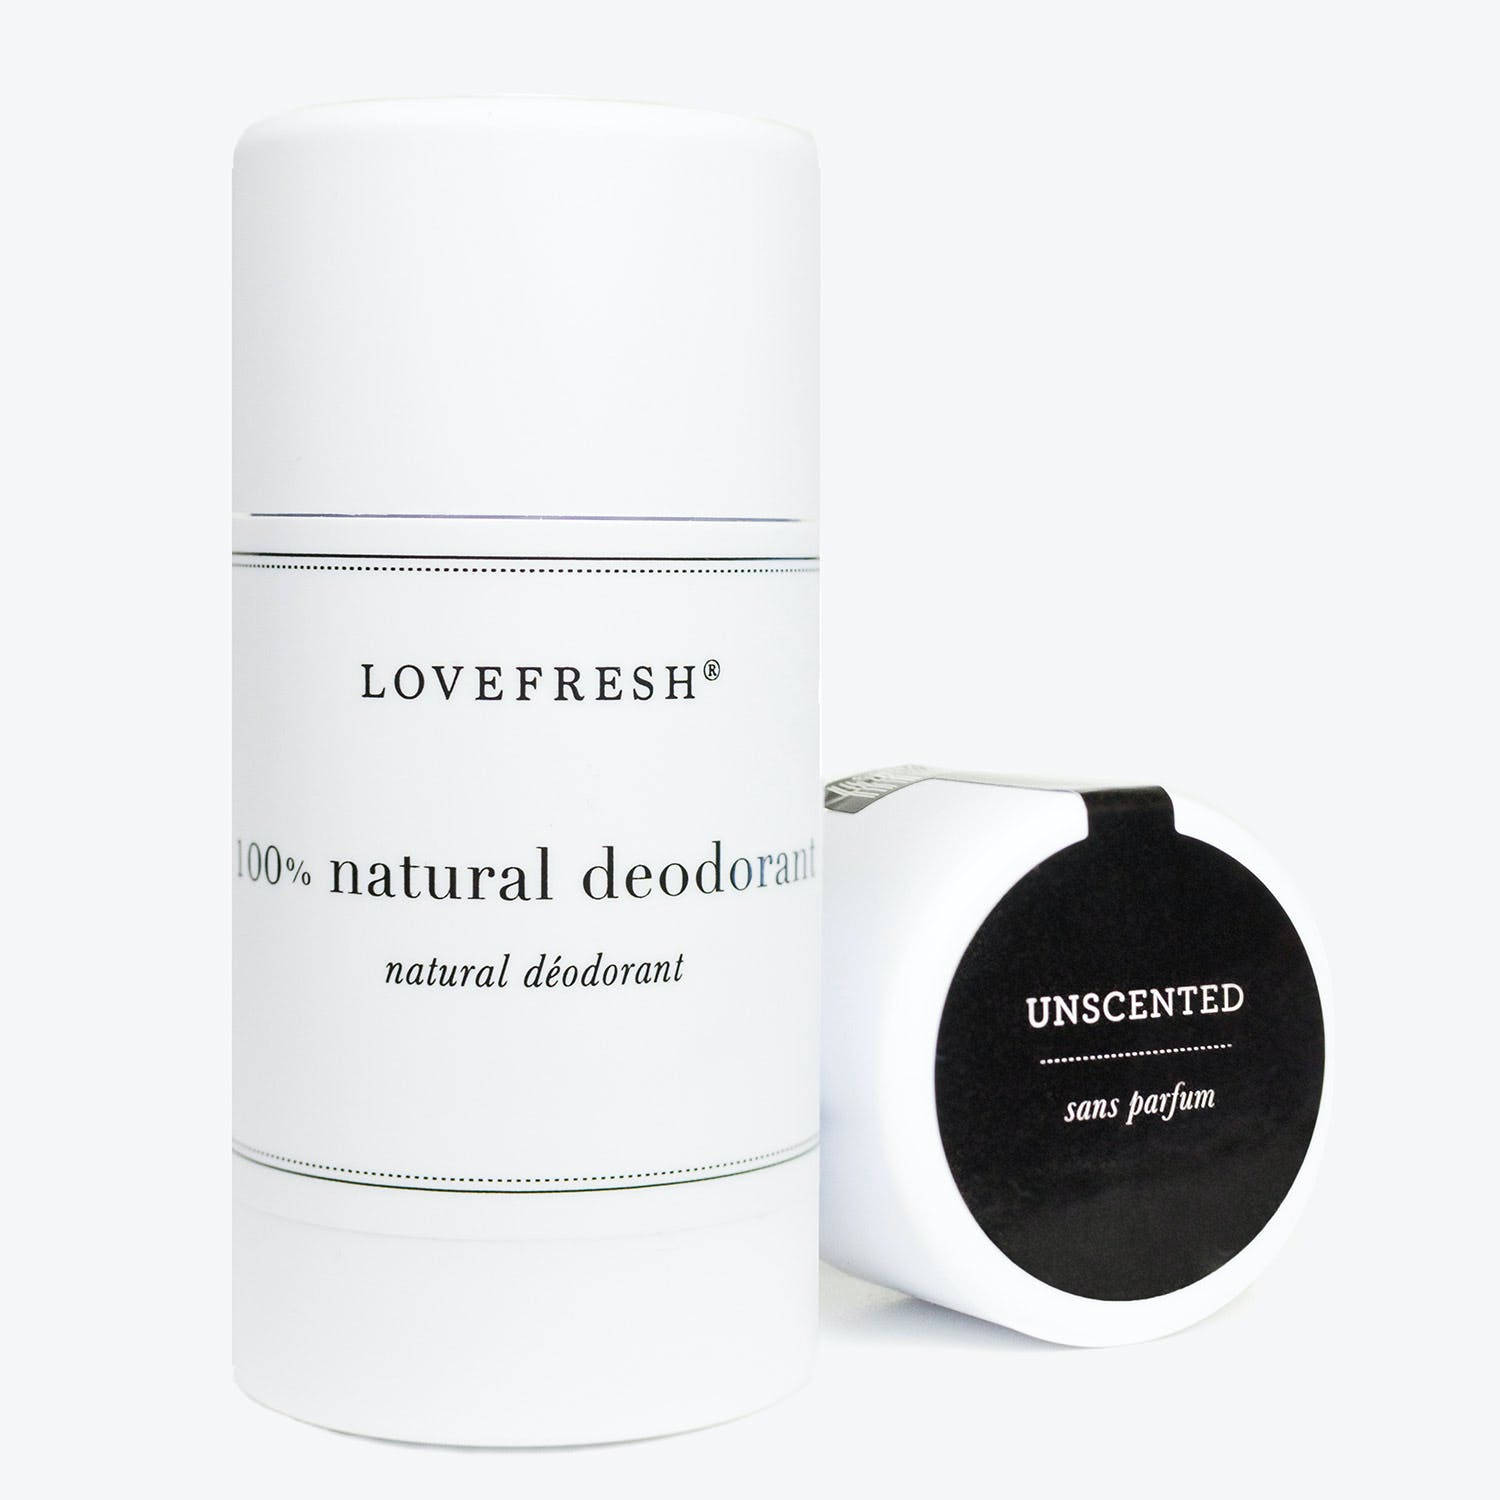 Lovefresh Deodorant Unscented